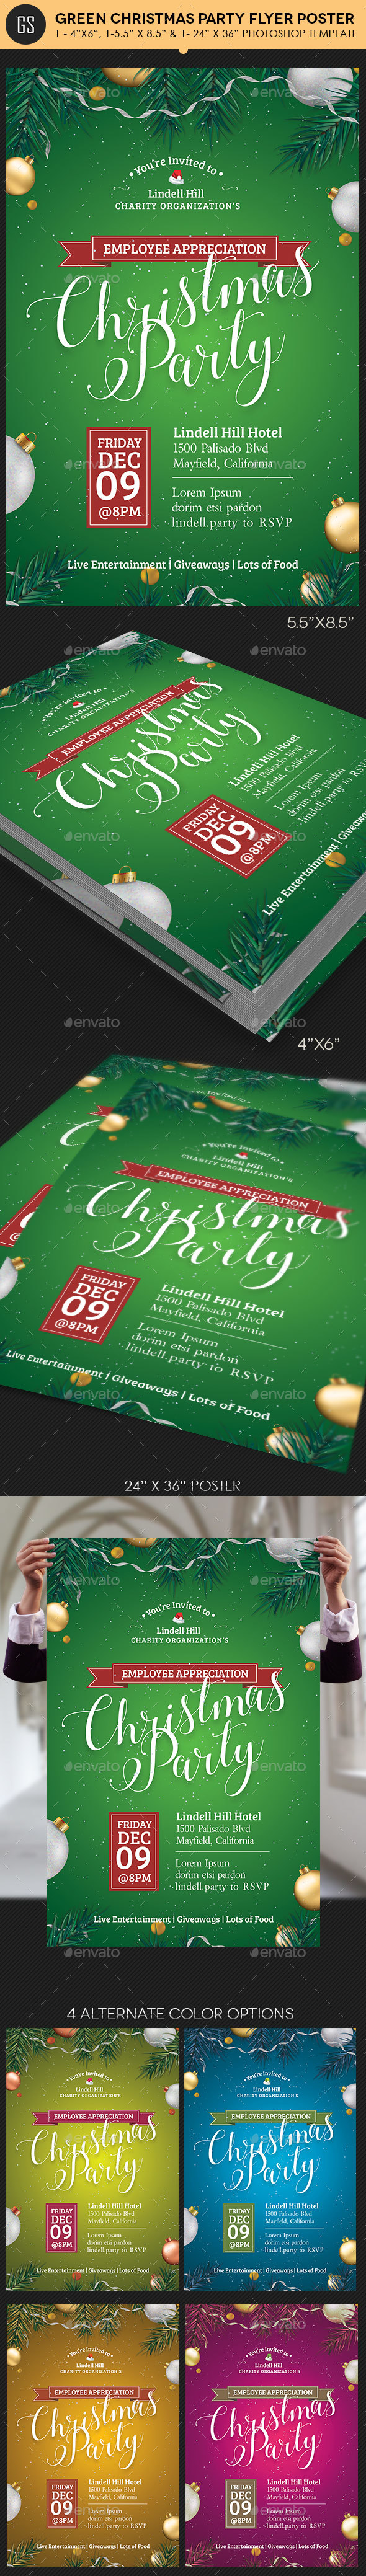 Green Christmas Party Flyer Poster Template - Holidays Events